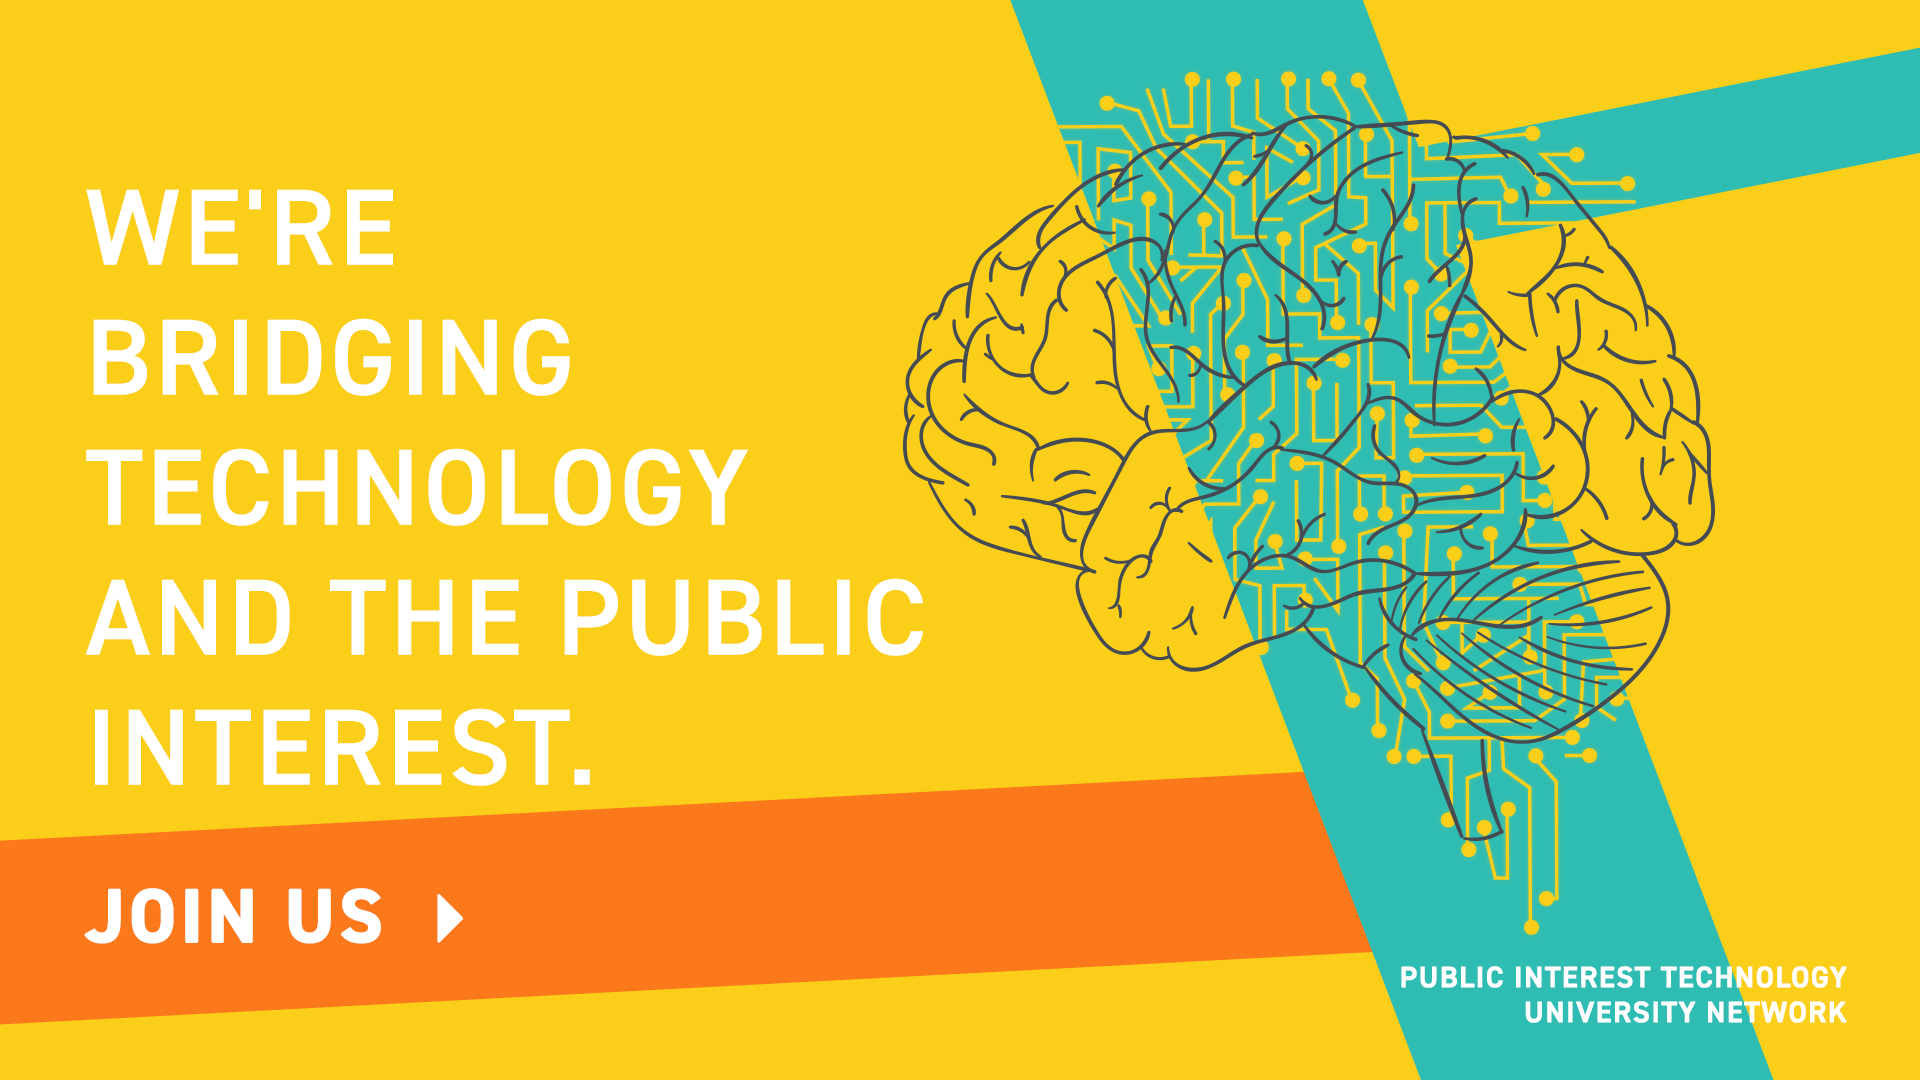 We're bridging technology and the public interest. Join us. Public Interest Technology University Network